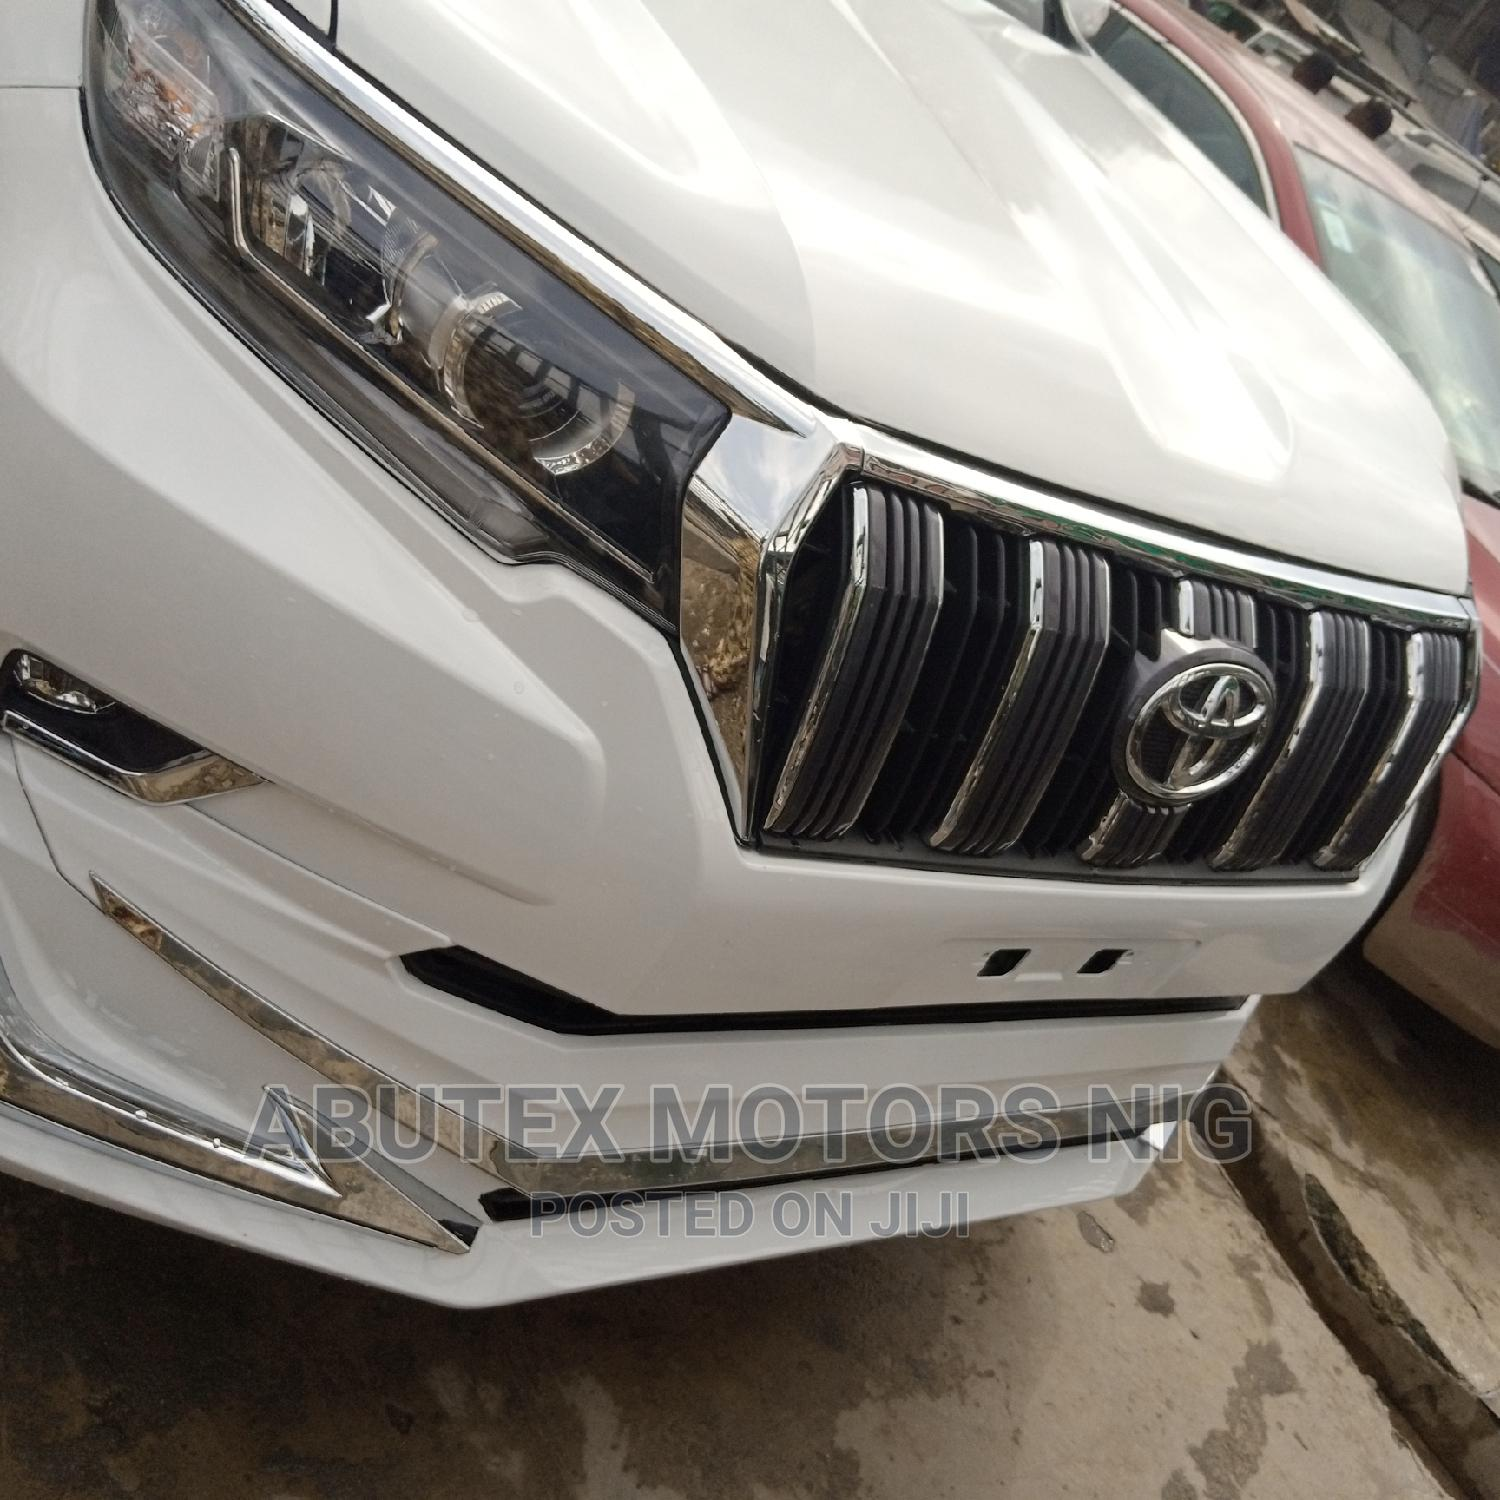 Archive: Complete Upgrade Kit Toyota Prado From 2010 to 2020